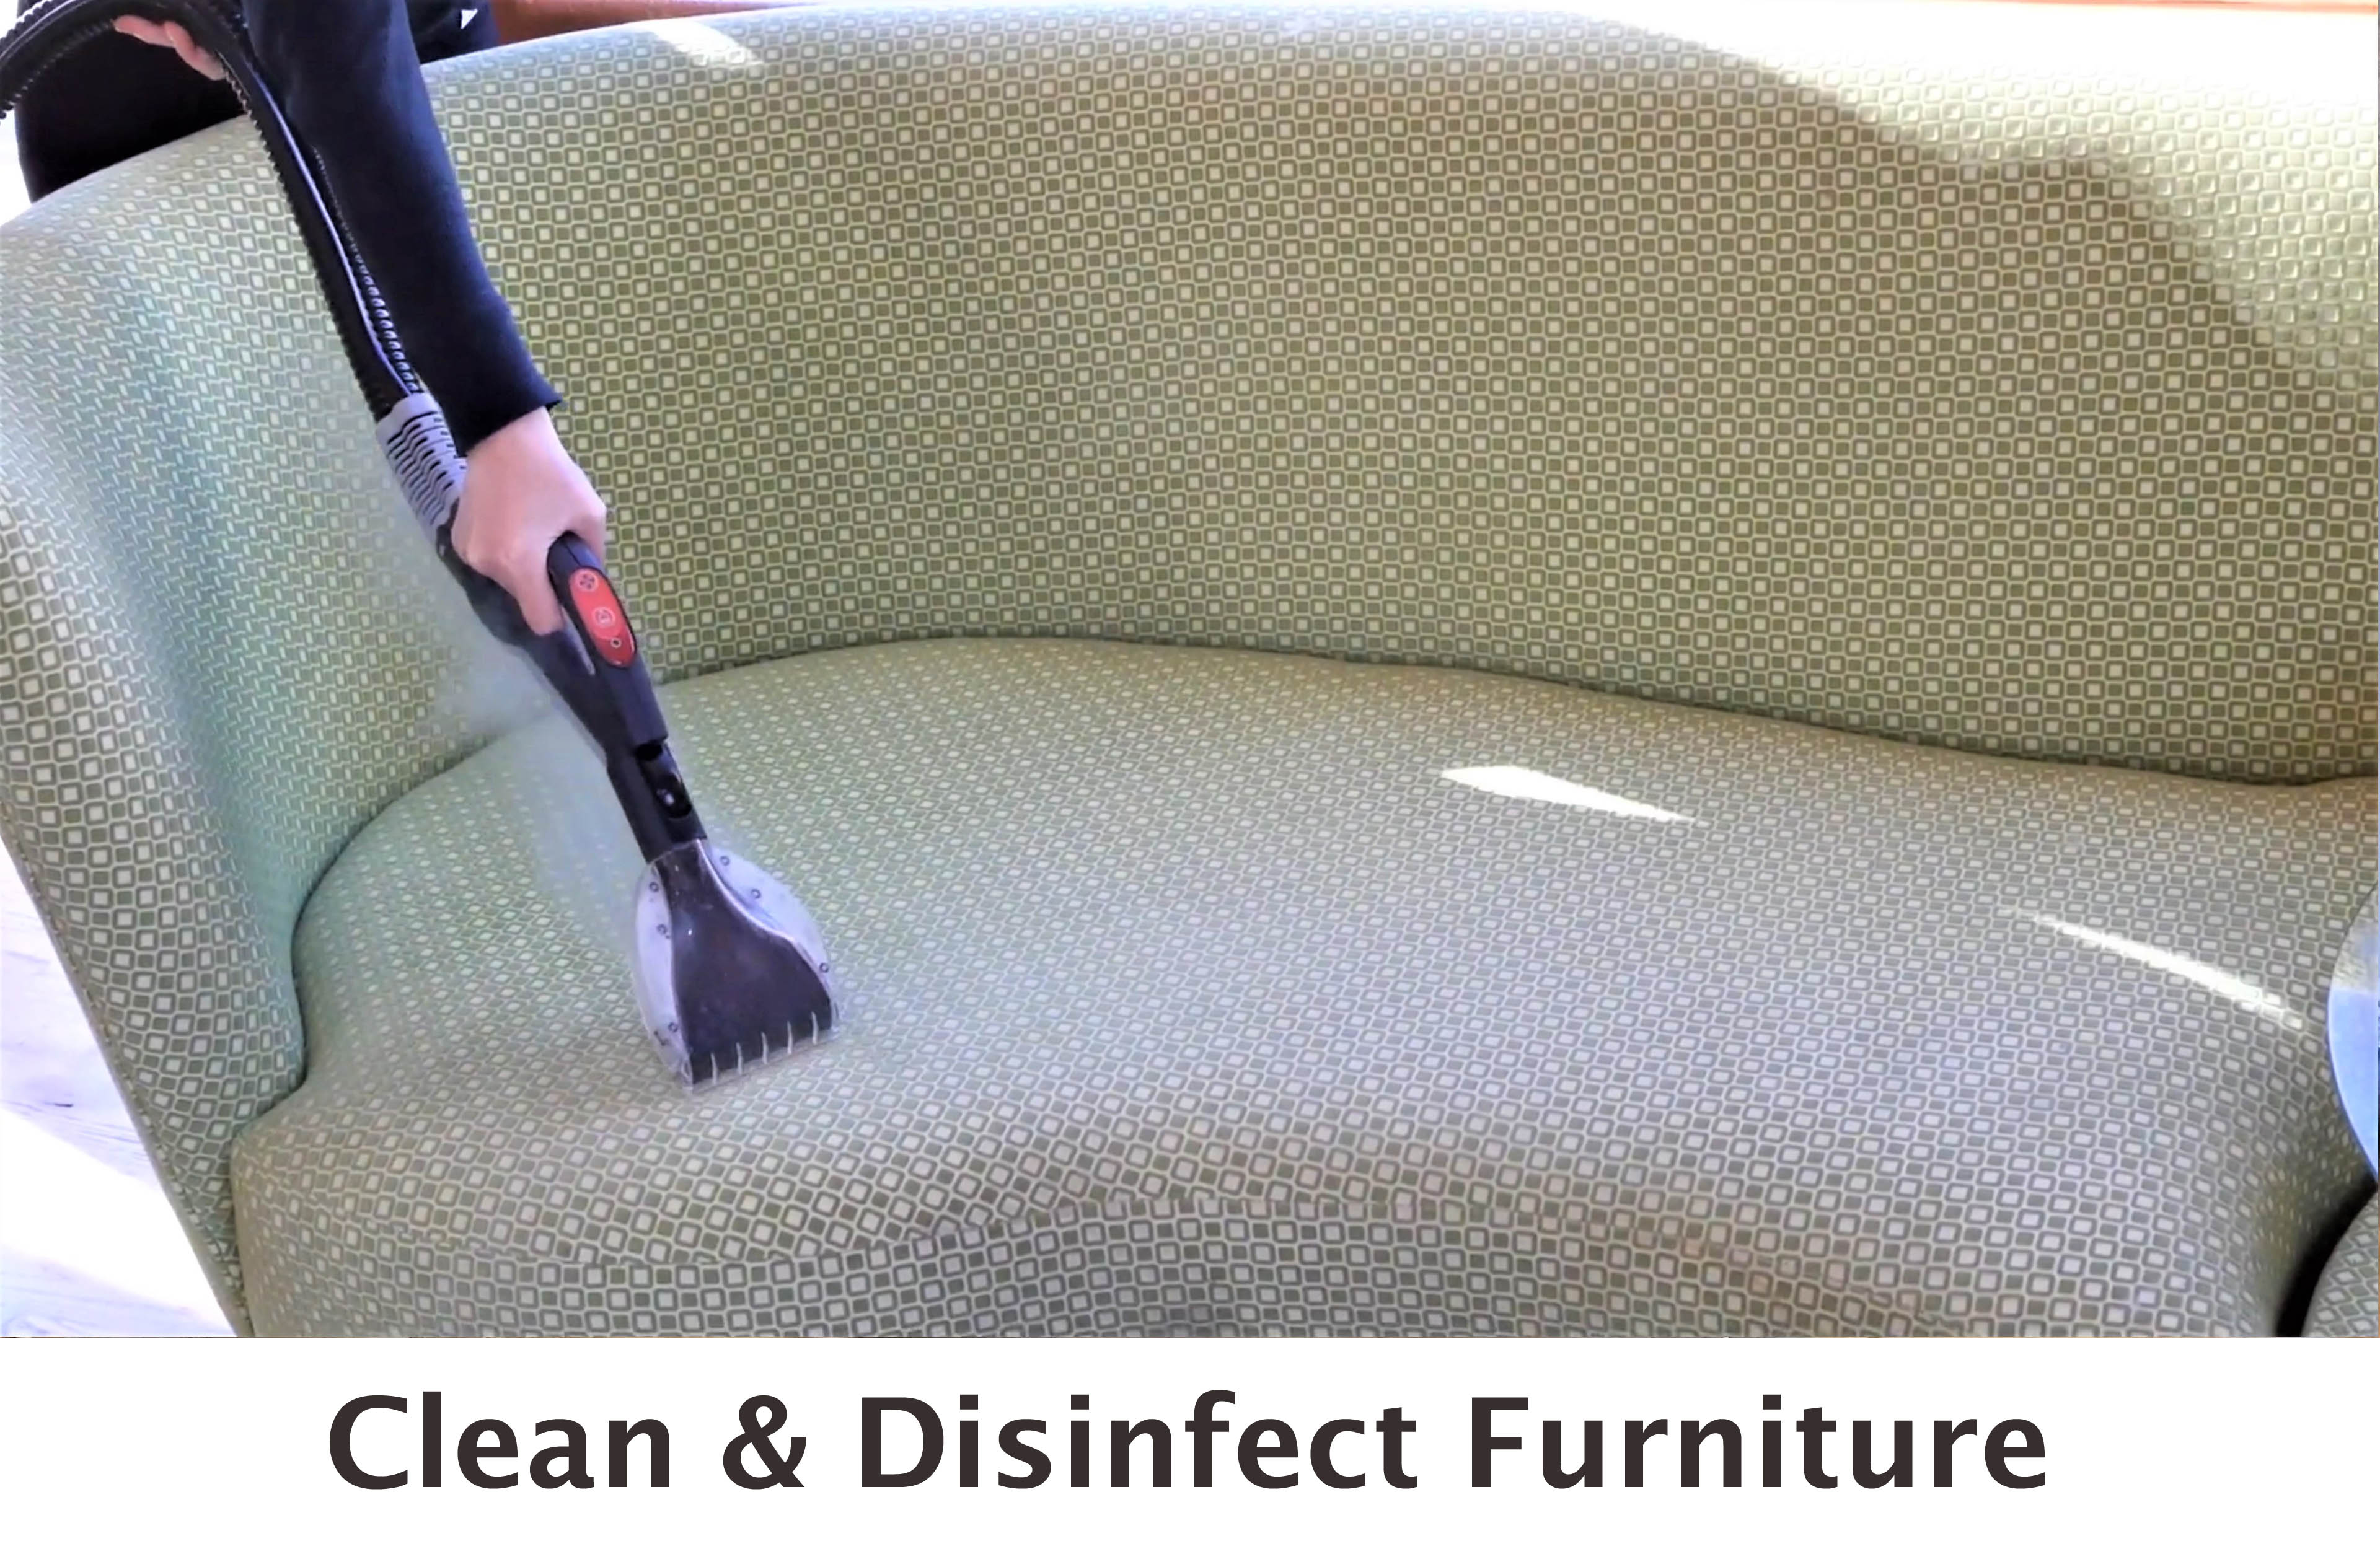 Clean and Disinfect Furniture with steam cleaning